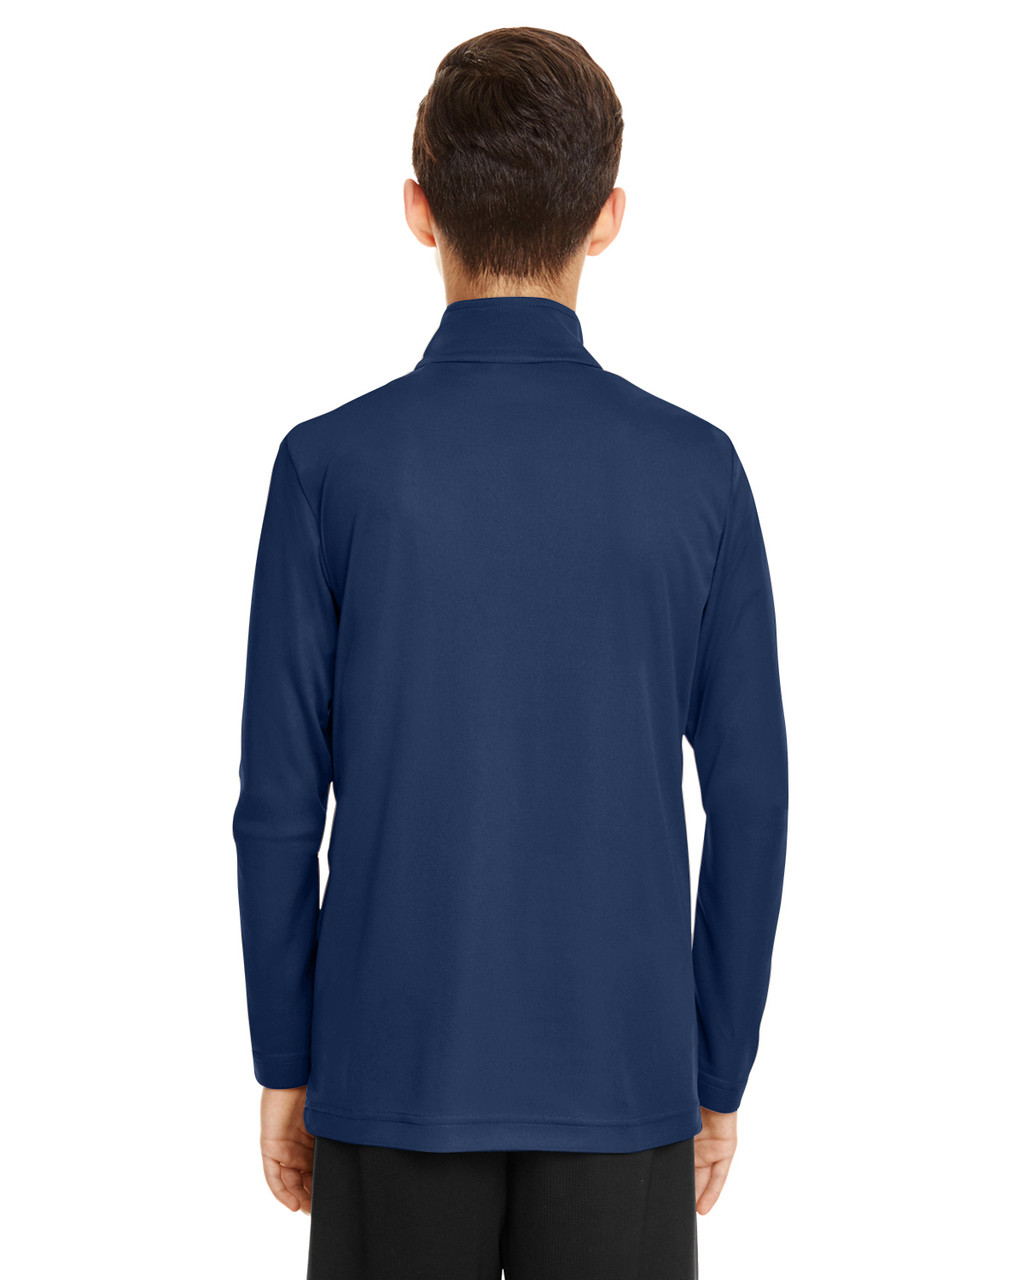 Sport Dark Navy - TT31Y Team 365 Youth Zone Performance Quarter-Zip Shirt